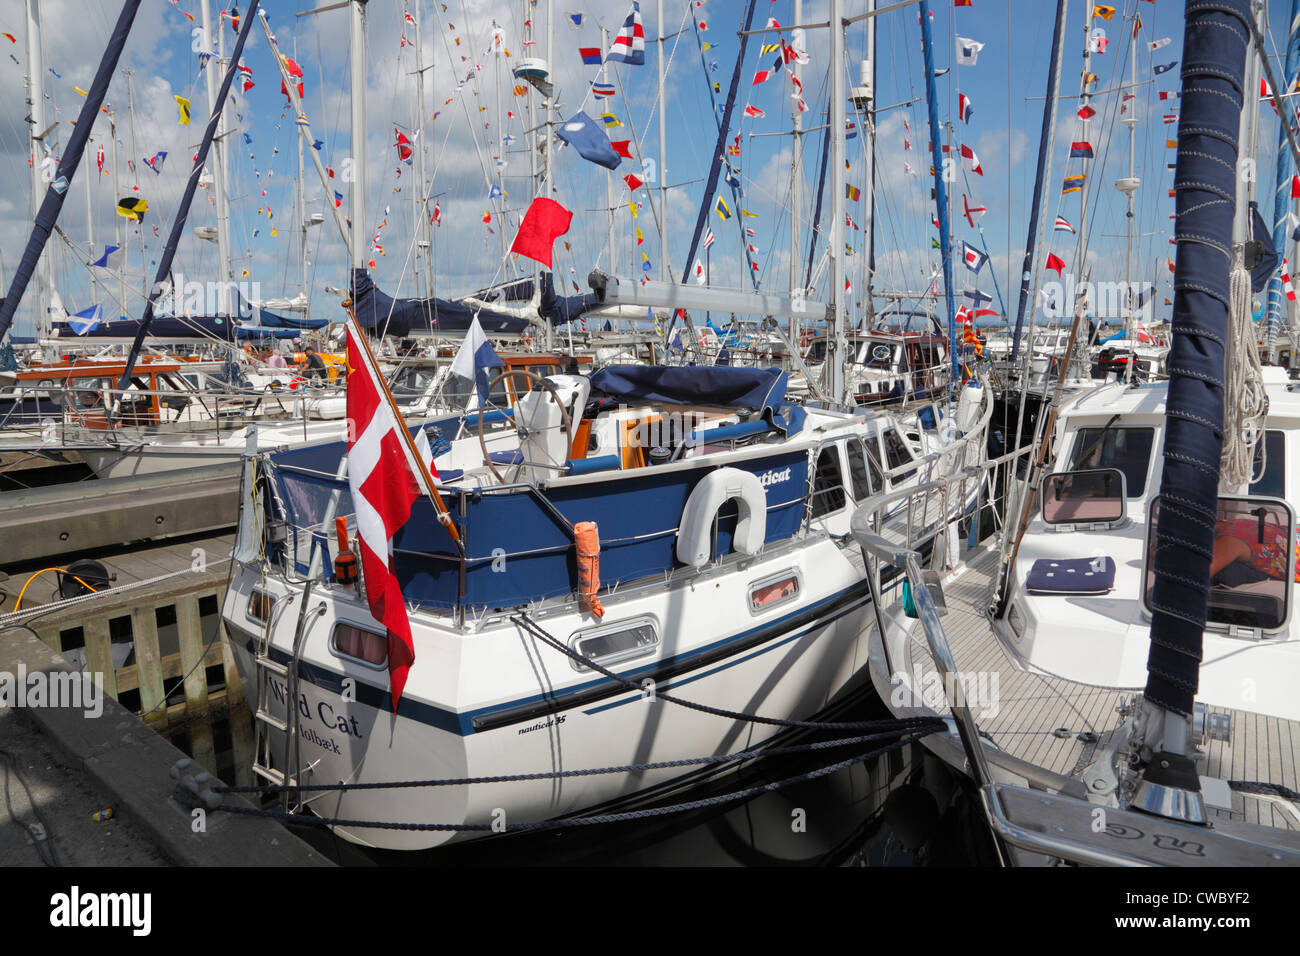 Nauticat motorsailers decorated with signal flags in the Scandinavian Nauticat Rally 2012 in Rungsted Harbour, Denmark. - Stock Image